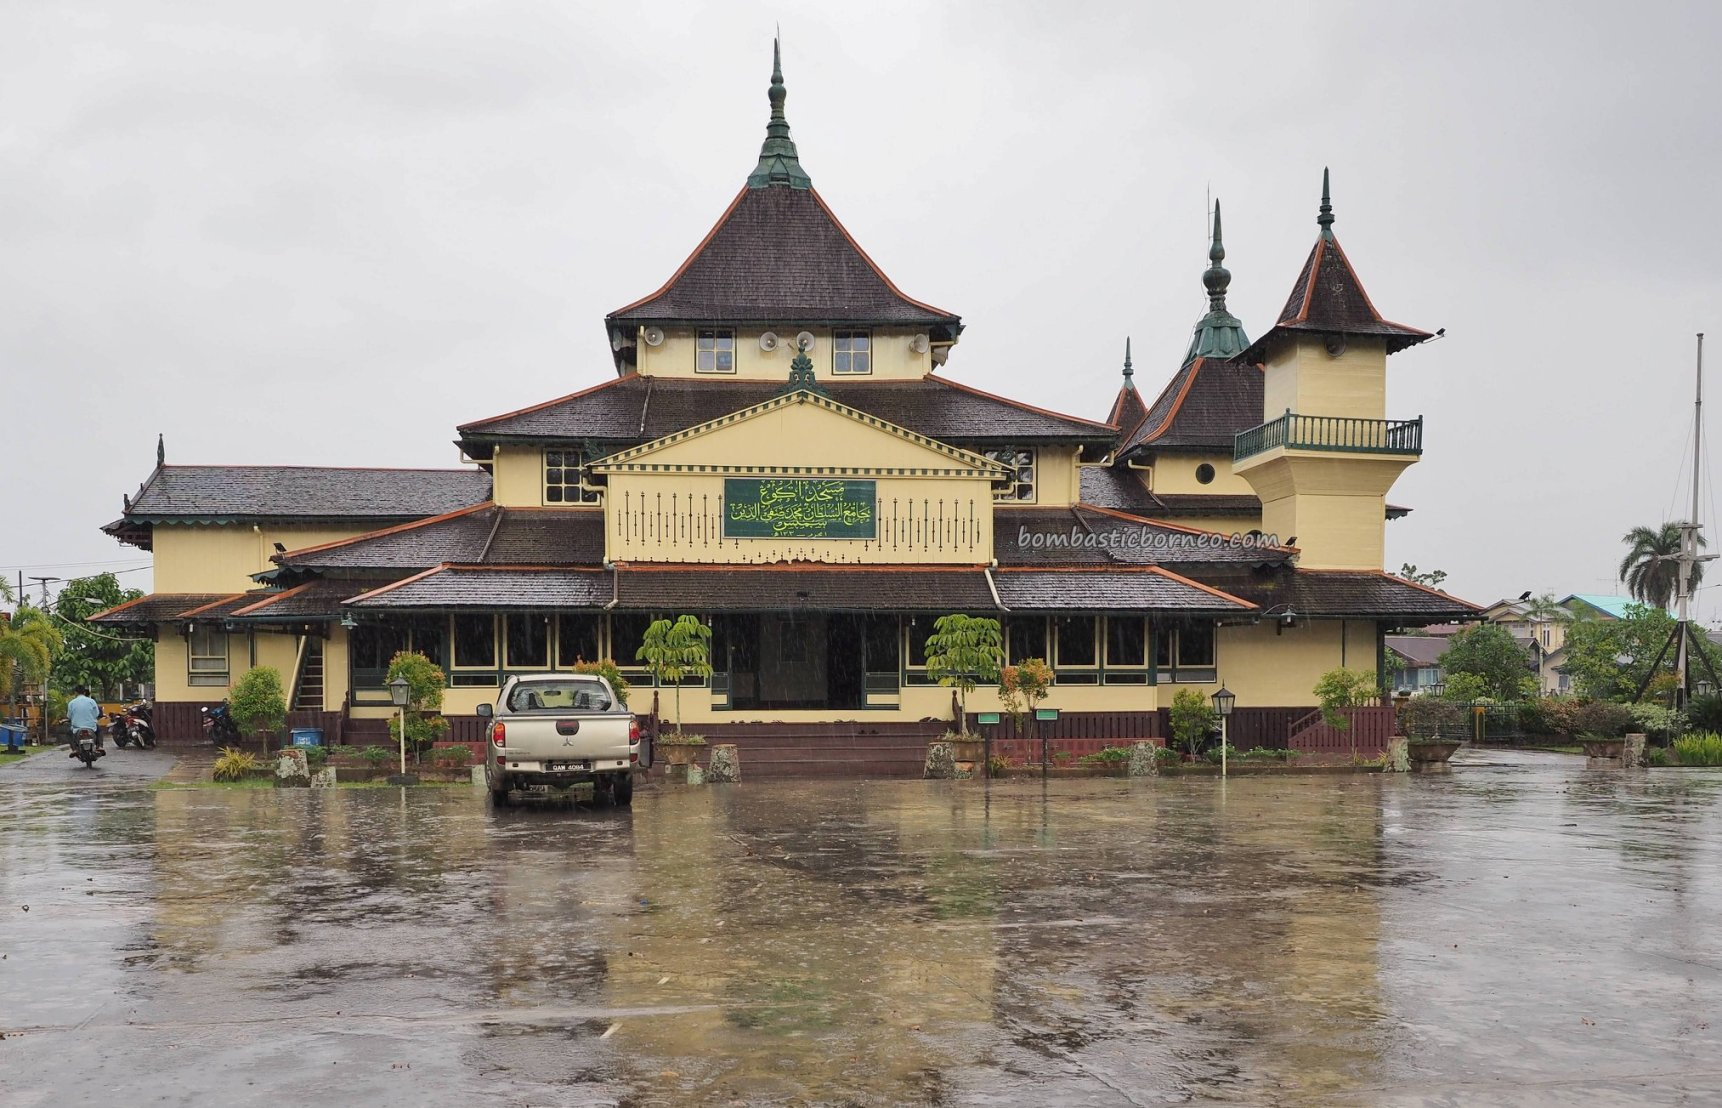 mosque, Keraton, Kesultanan Melayu, traditional, authentic, destination, Dayak Melayik, town, Borneo, obyek wisata, Tourism, travel guide, crossborder, 婆罗洲旅游景点, 印尼西加里曼丹